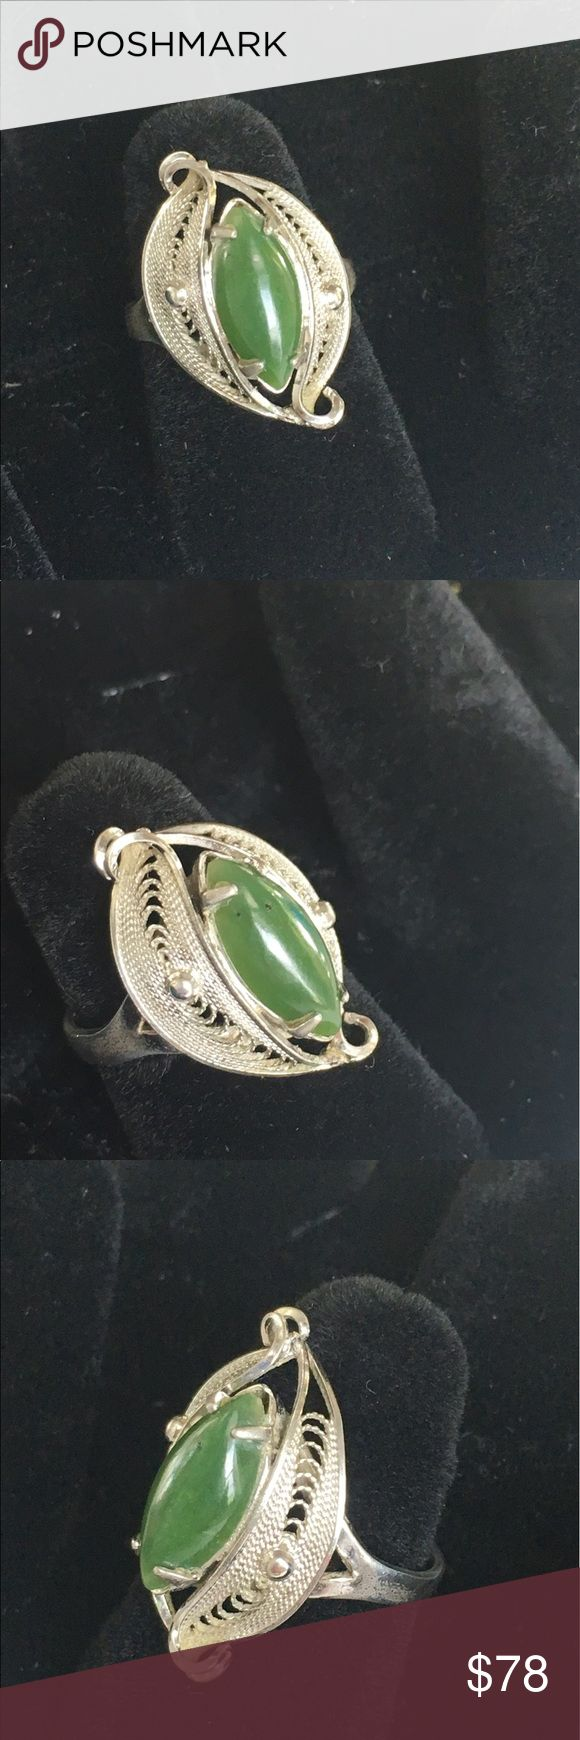 Vintage Sorento Sterling Jade ring spun silver A stunning and intricate vintage Jade and Sterling Silver ring. The Marquise cut Jade stone looks amazing next to the filigree type Silver work on the ring! This piece is marked Sorento Sterling. Approx size 5.5. Overall good vintage condition showing signs of age and use. Sorry NO TRADES! Vintage Jewelry Rings